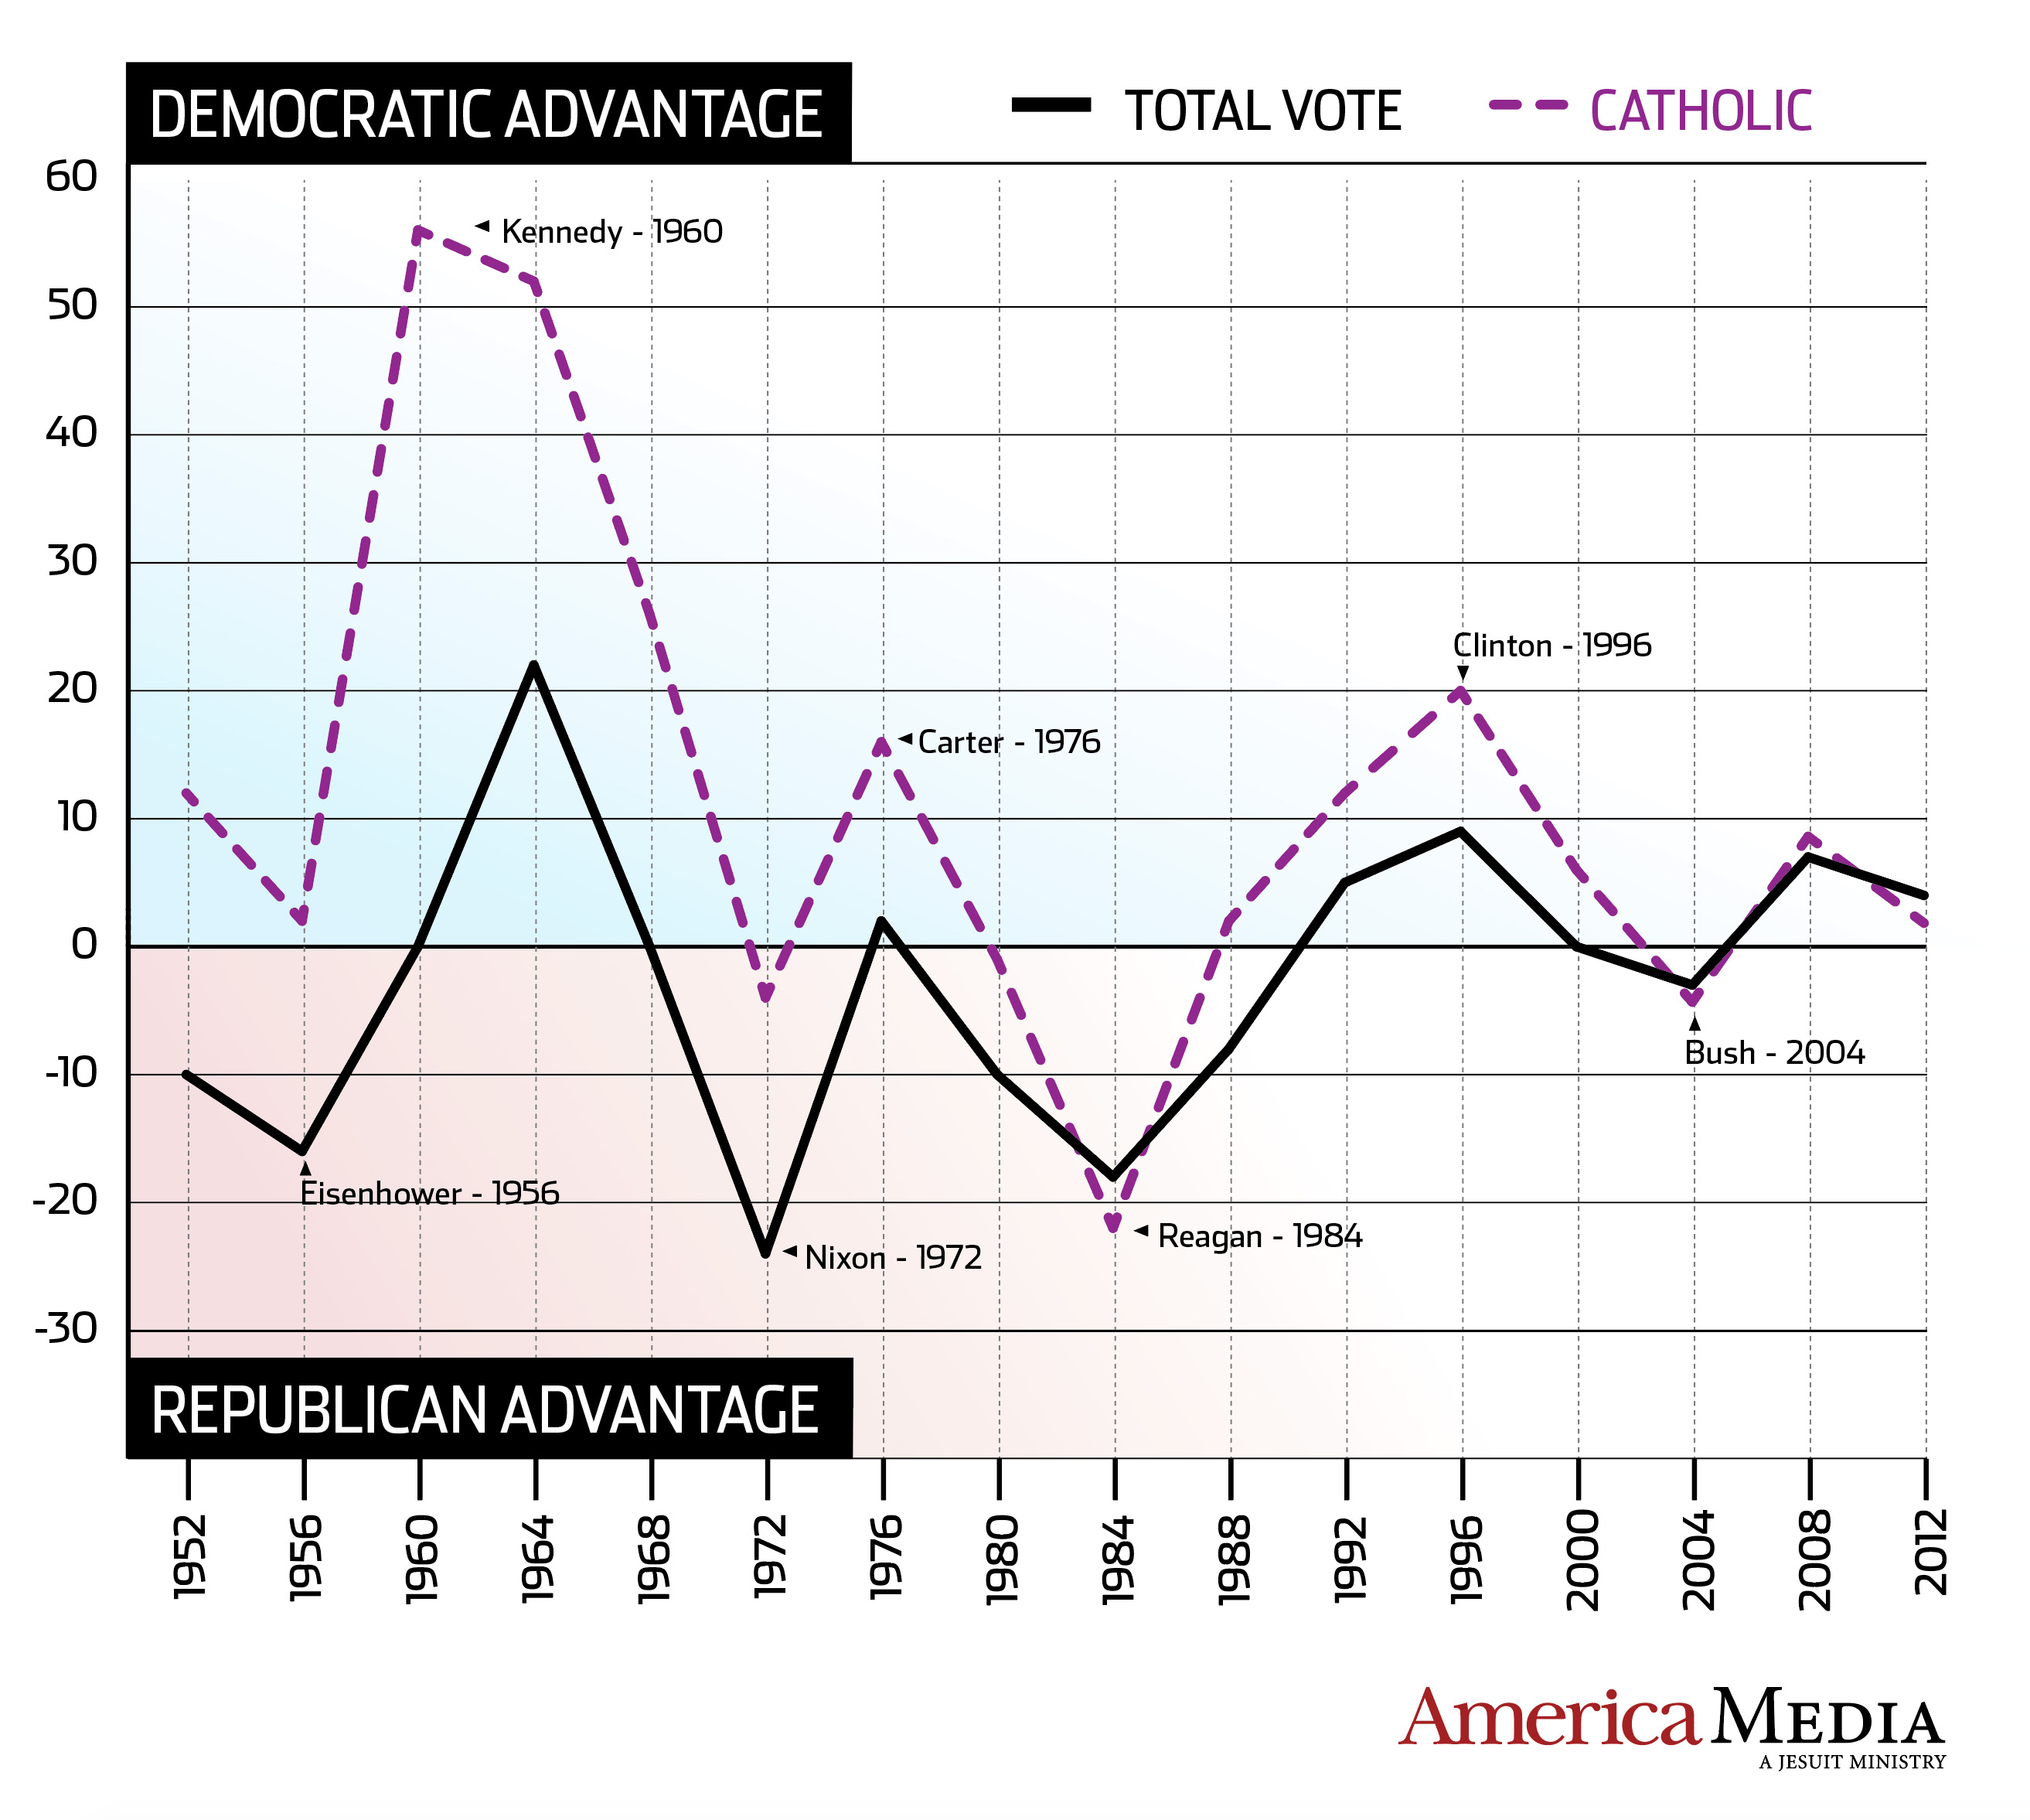 Catholic voting trends compared with the general population.